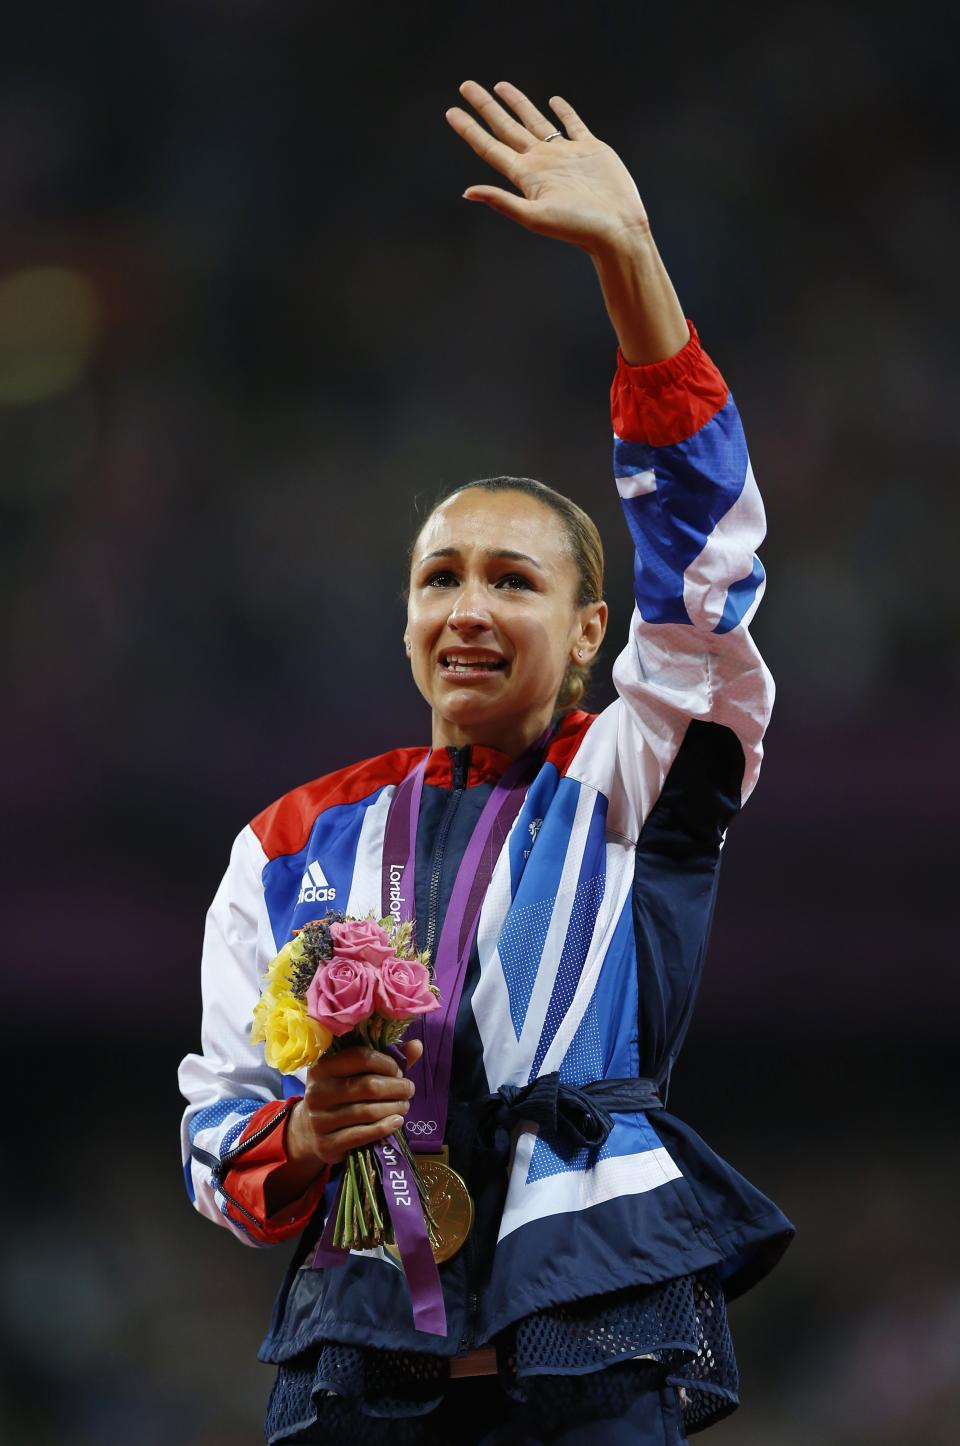 Britain's Jessica Ennis reacts after receiving her gold medal for the heptathlon during the athletics in the Olympic Stadium at the 2012 Summer Olympics, London, Saturday, Aug. 4, 2012. (AP Photo/Daniel Ochoa De Olza)